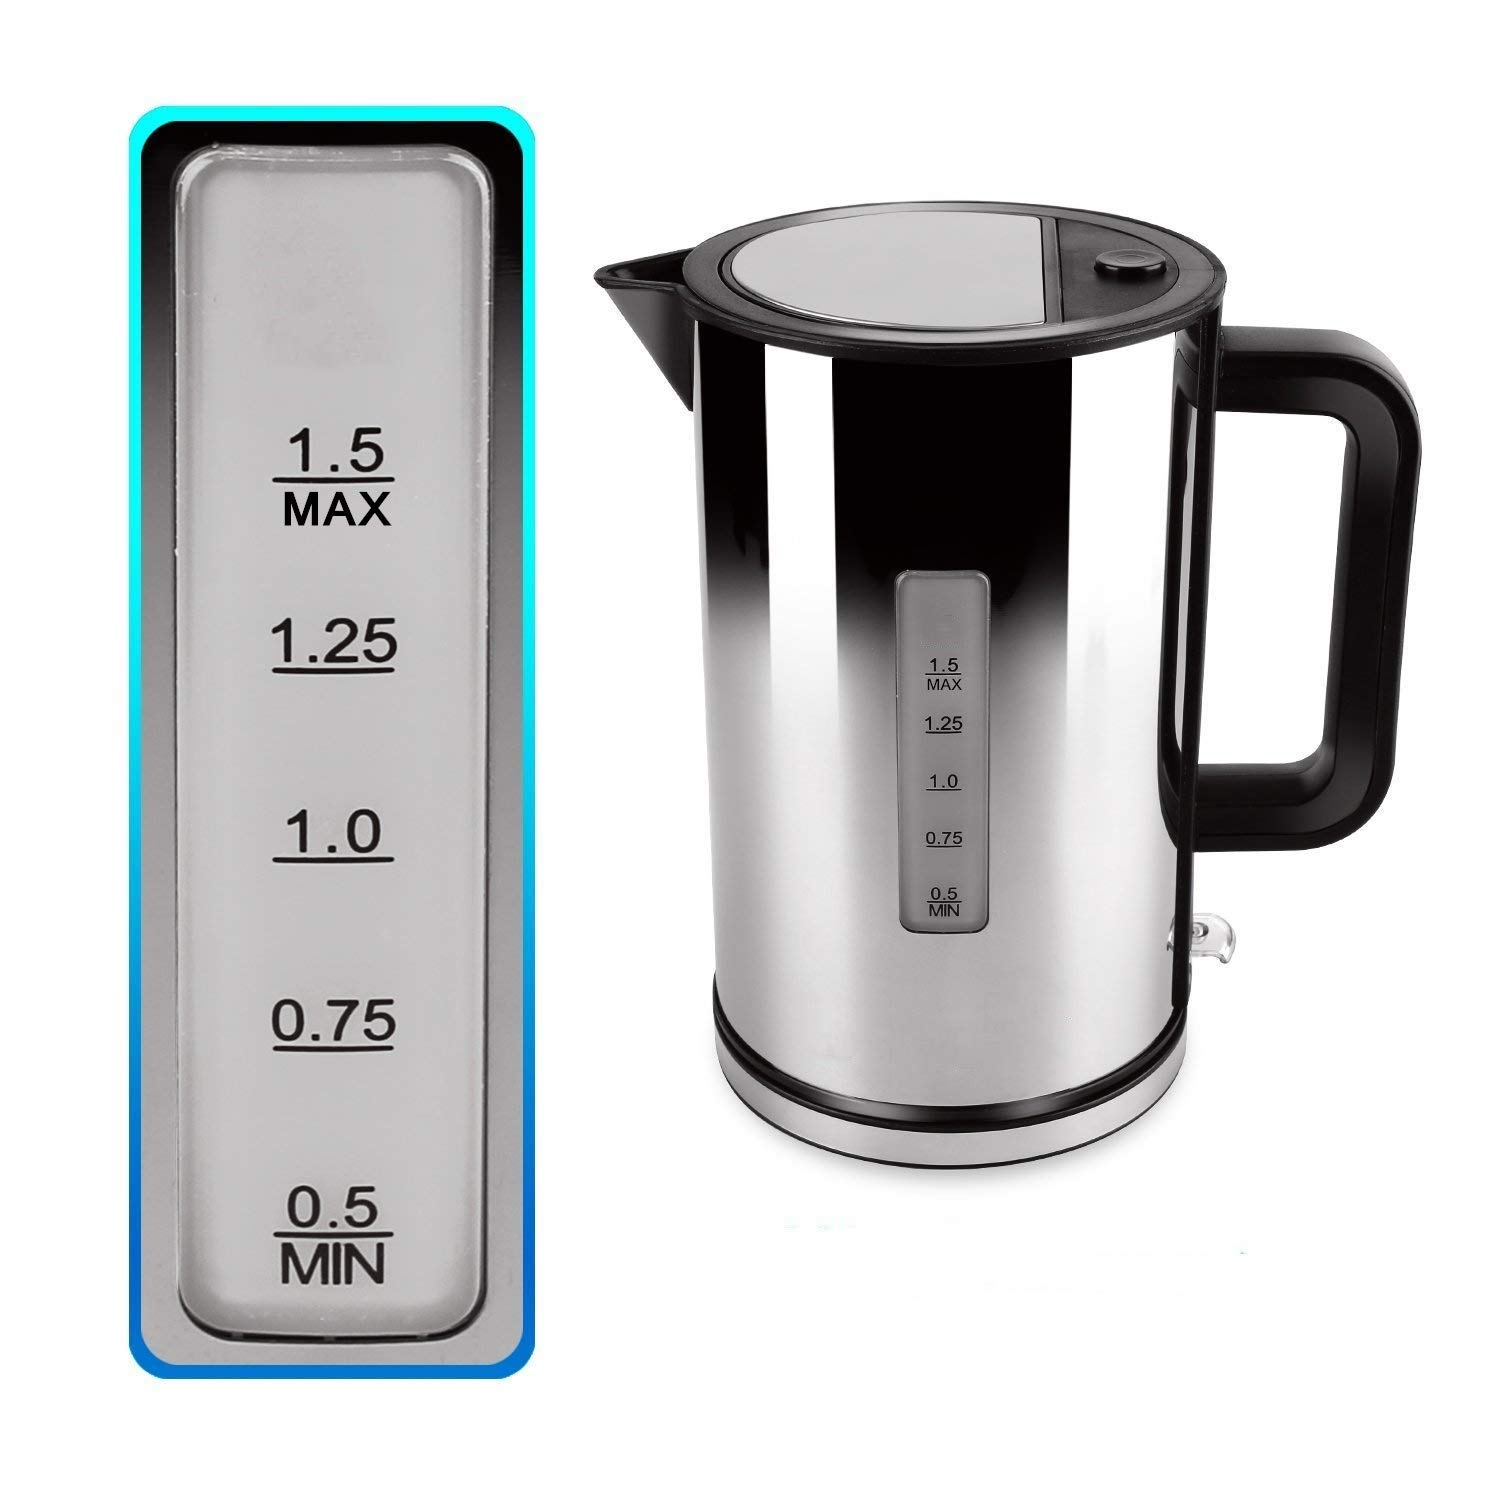 Electric Kettle, CUSIBOX Premium 304 Stainless Steel Water Kettle Double Wall Cordless Electric Boiler Kettle, 1.7 Liter, 1500Watts, Auto Shut Off With Boil Dry Protection